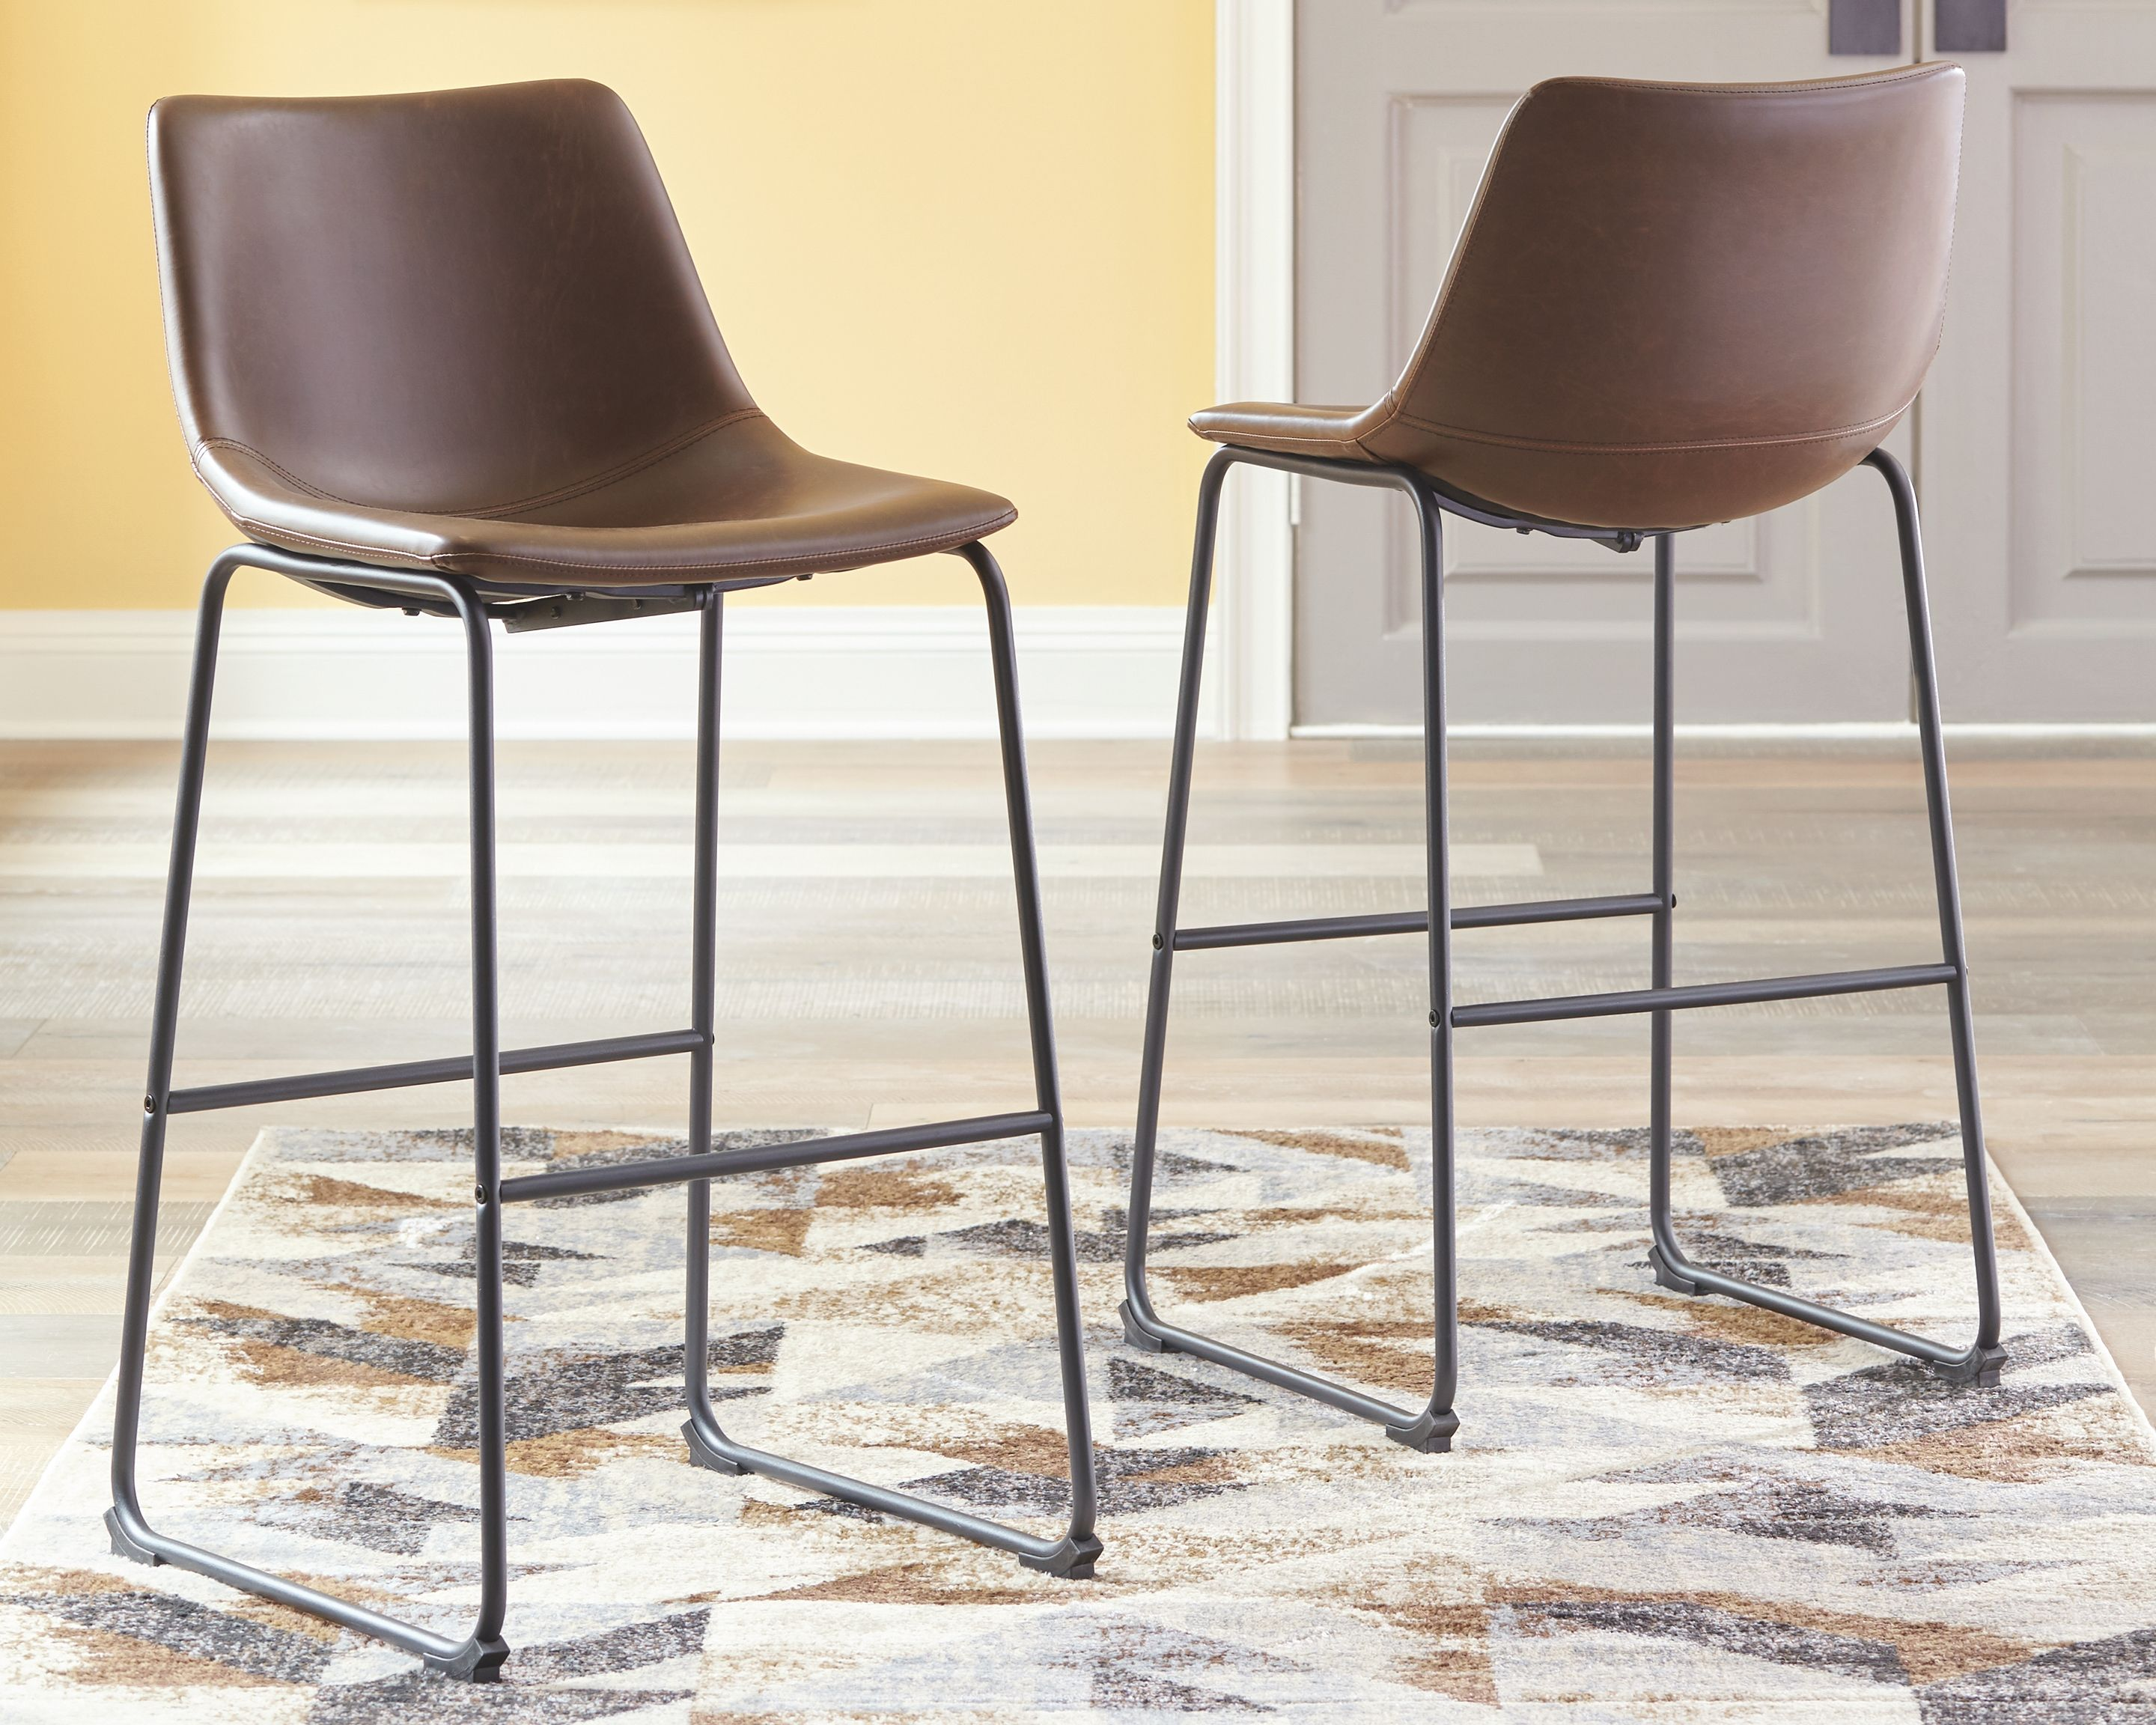 Centiar Counter Height Bar Stool Ashley Furniture Homestore In 2021 Upholstered Bar Stools Counter Height Bar Stools Modern Bar Stools